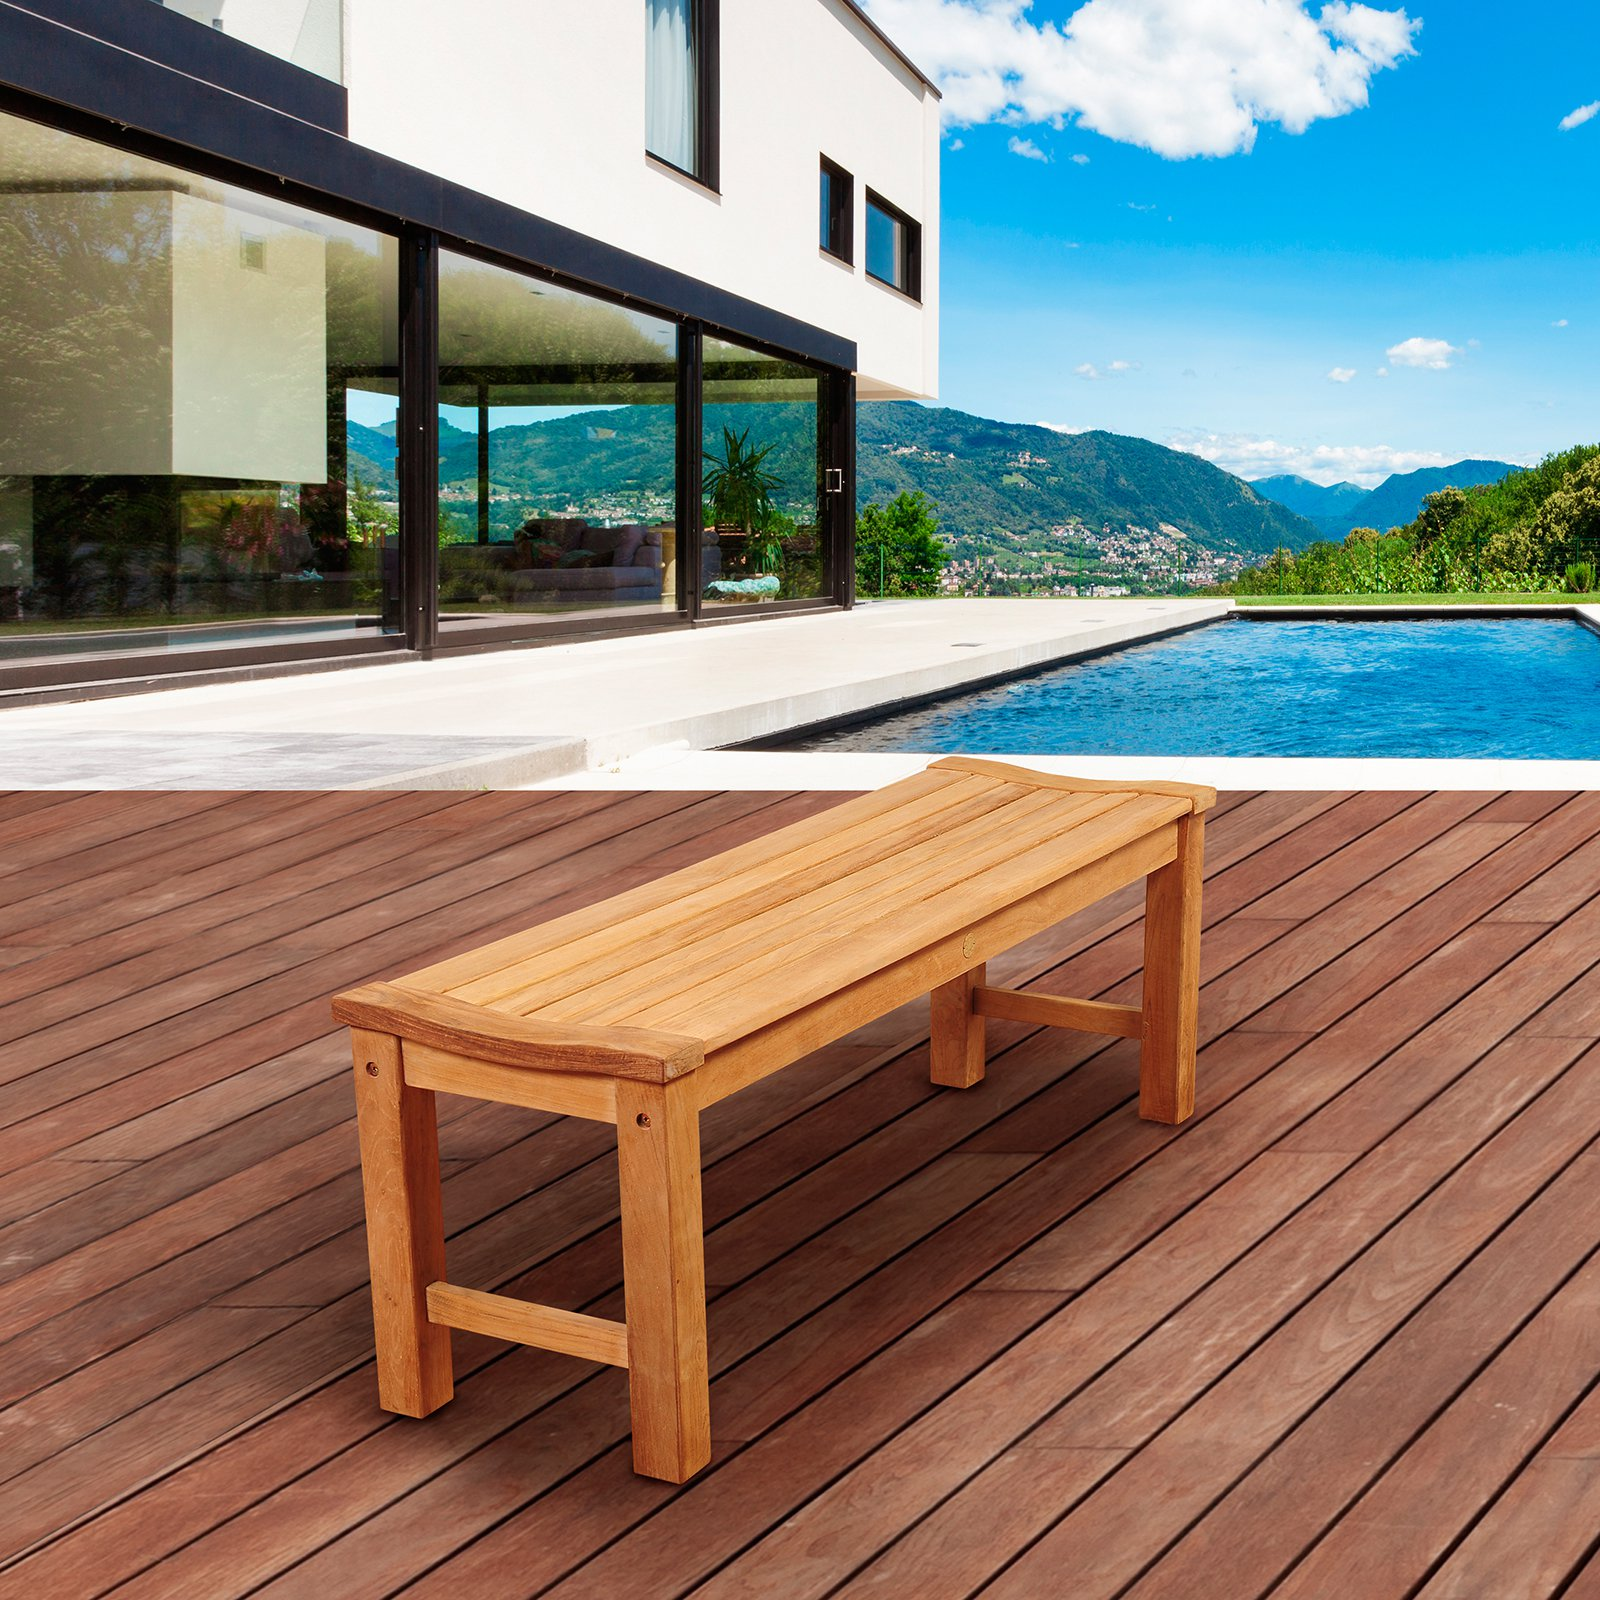 Amazonia Marth 51 in. Teak Backless Patio Bench by International Home Miami Corp